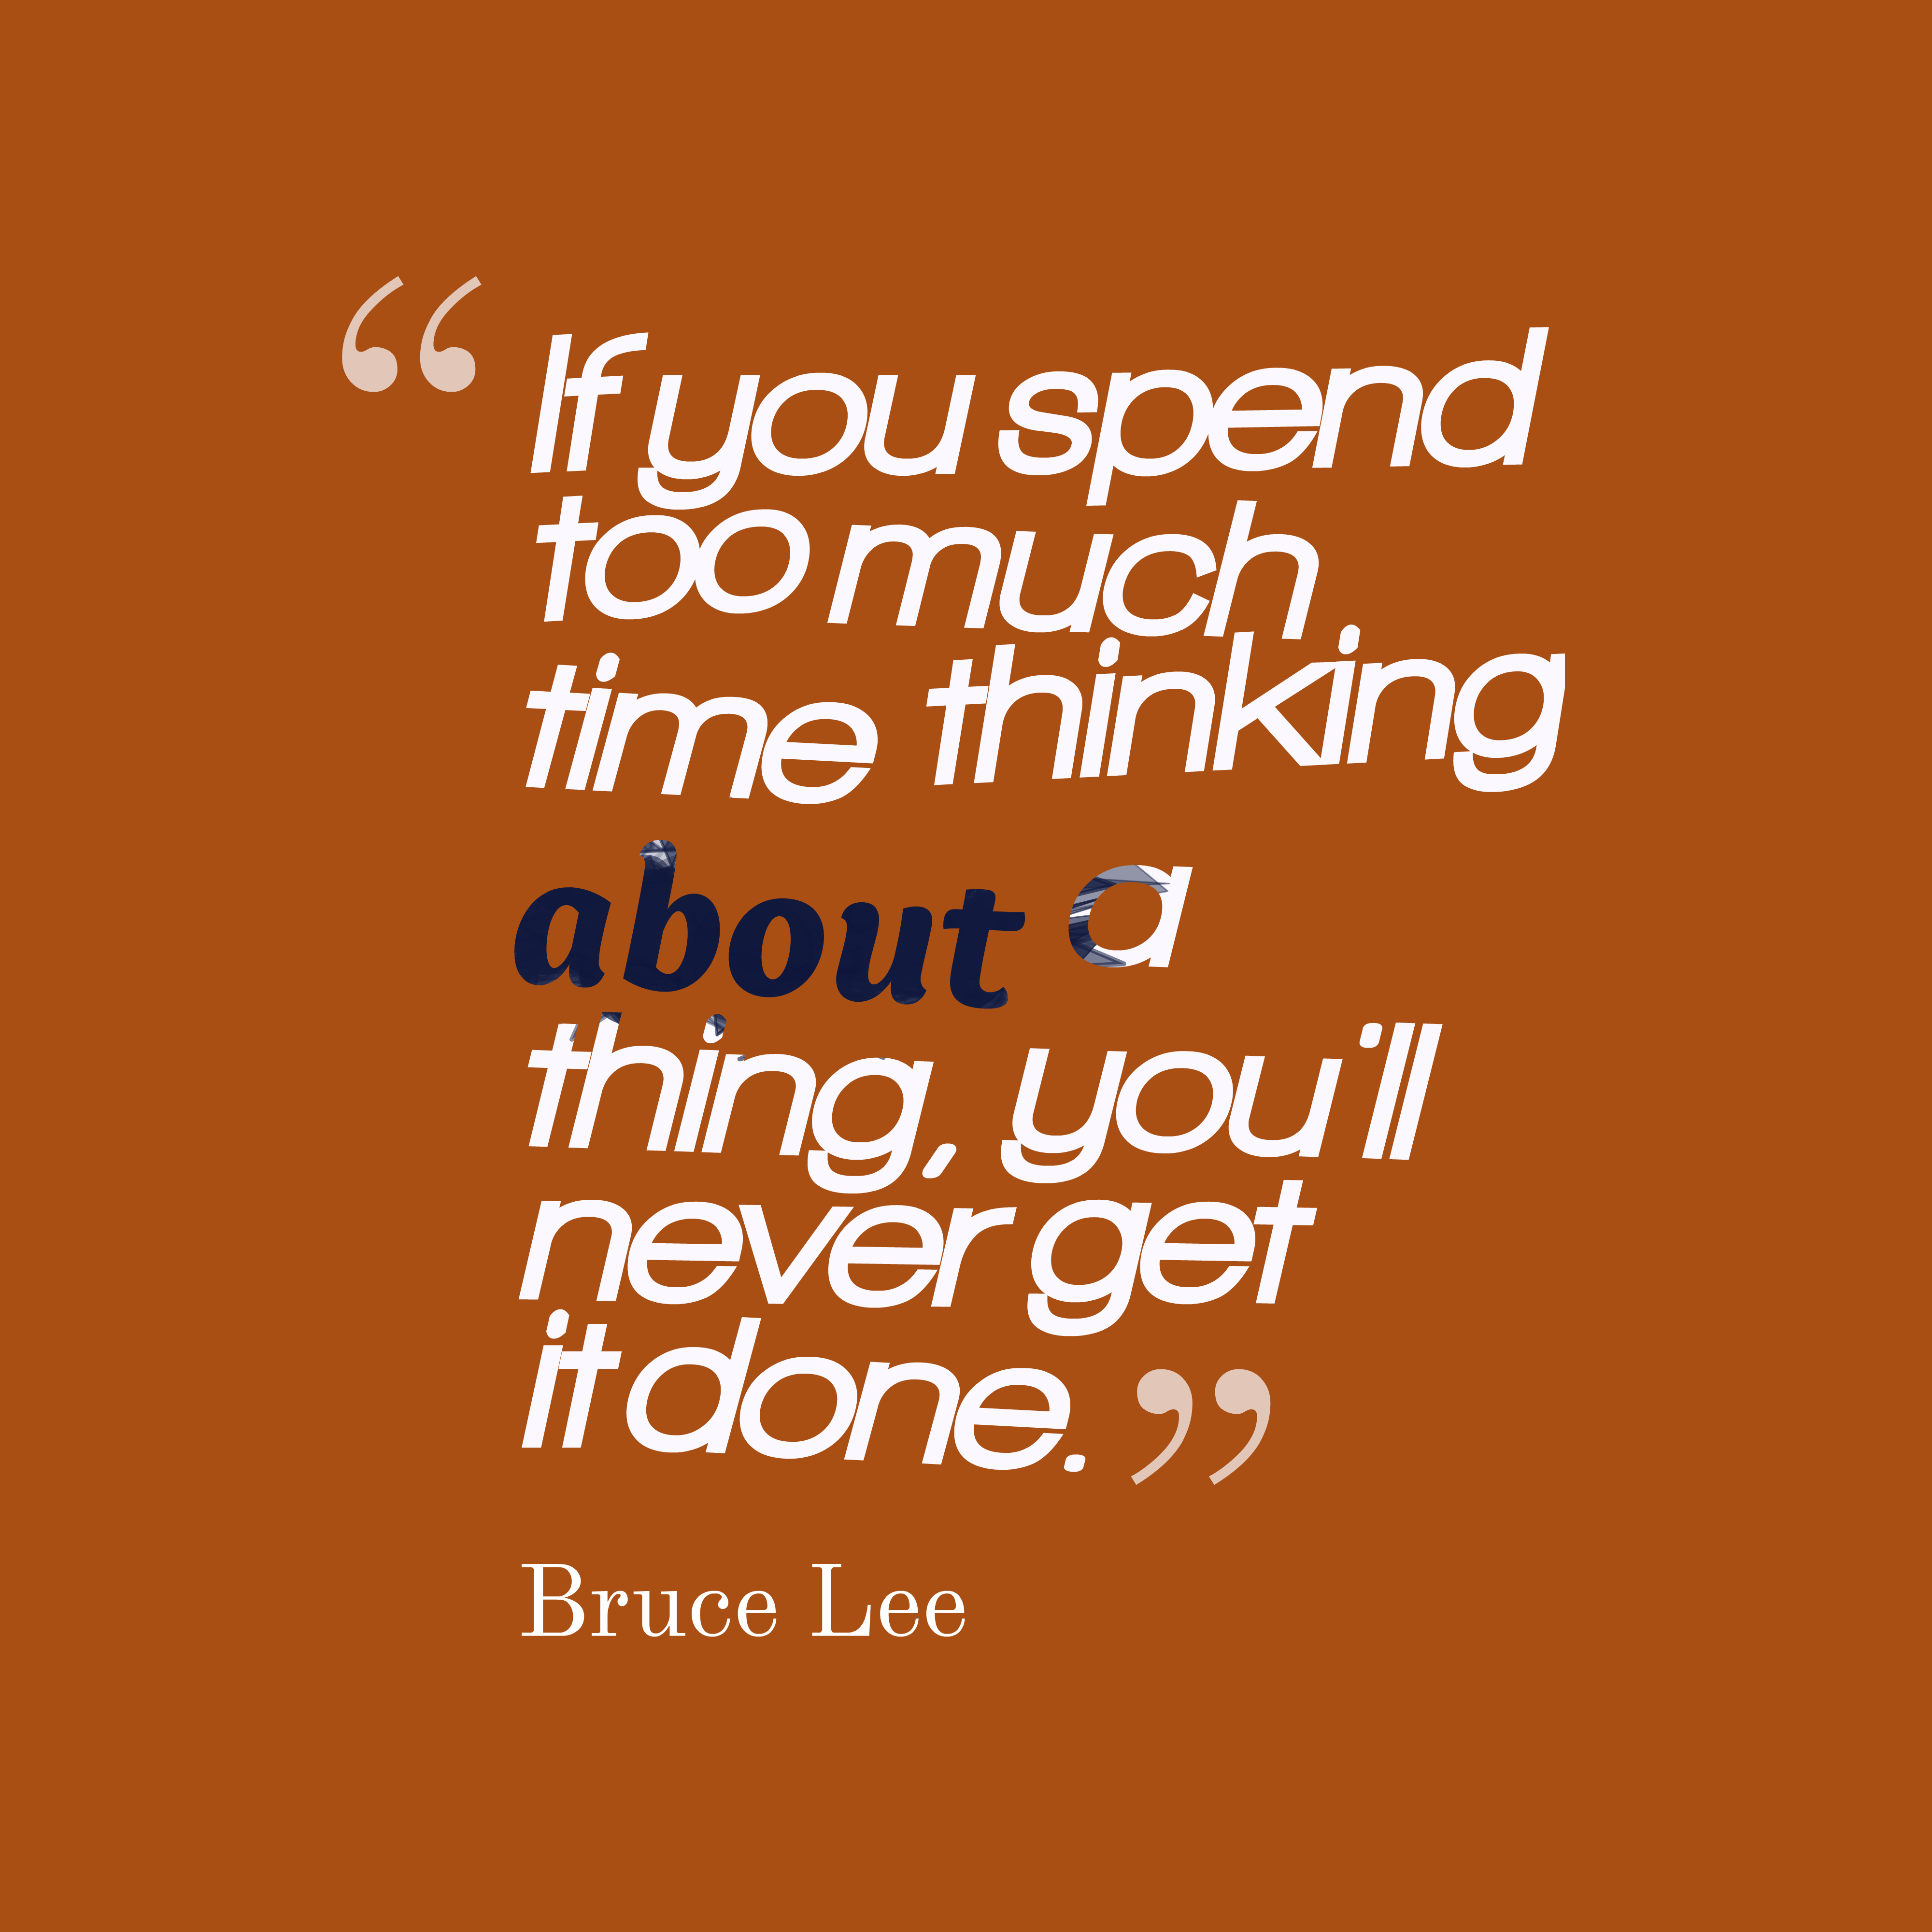 Bruce Lee Quote About Time